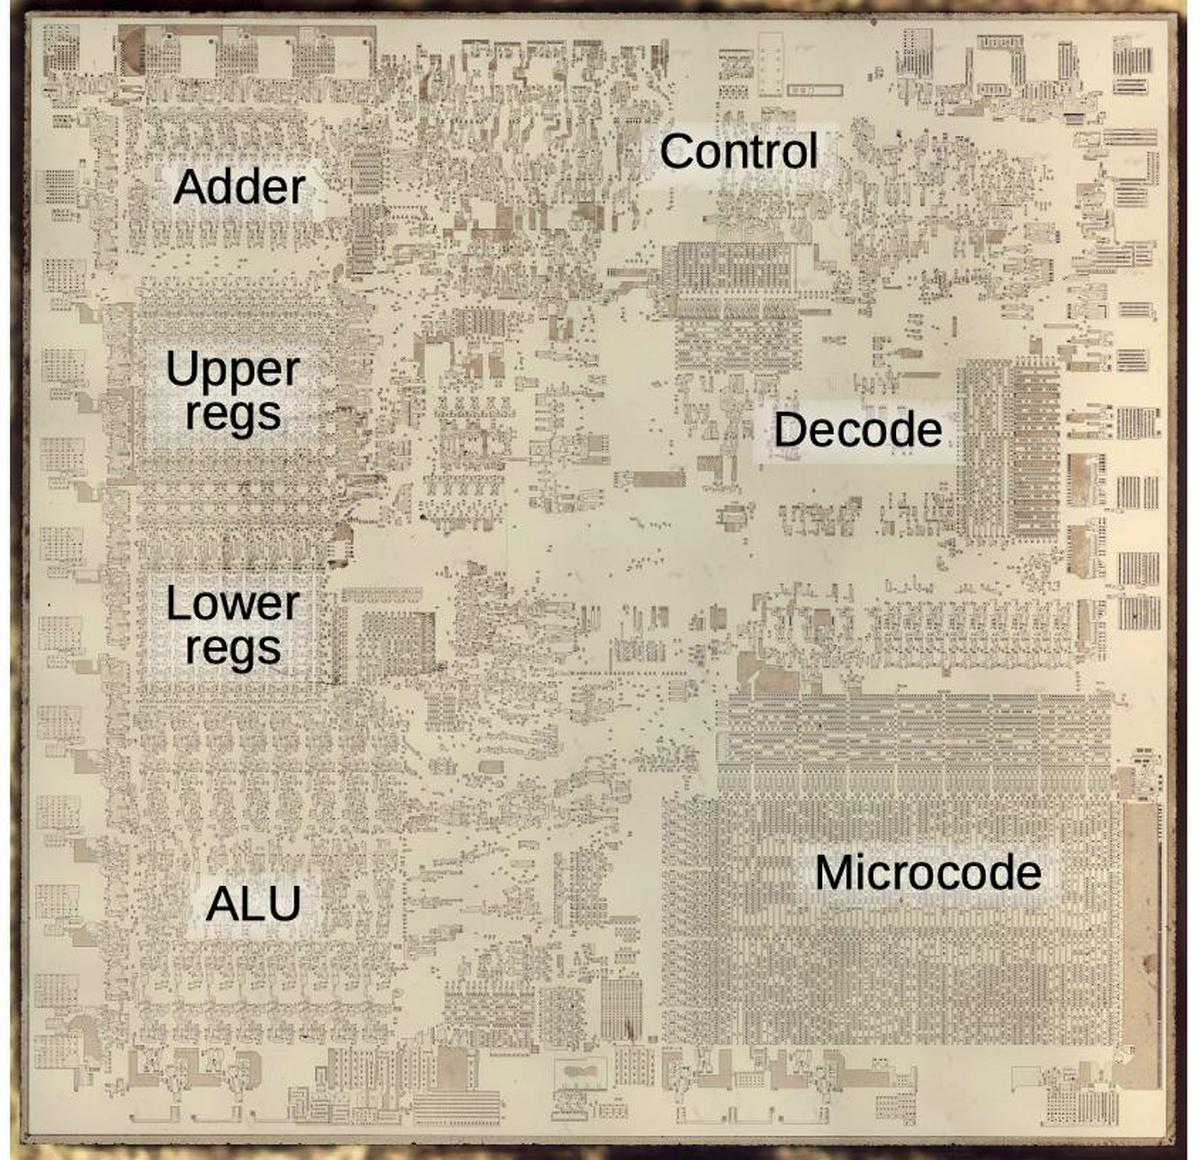 Die of the 8086 microprocessor showing main functional blocks.